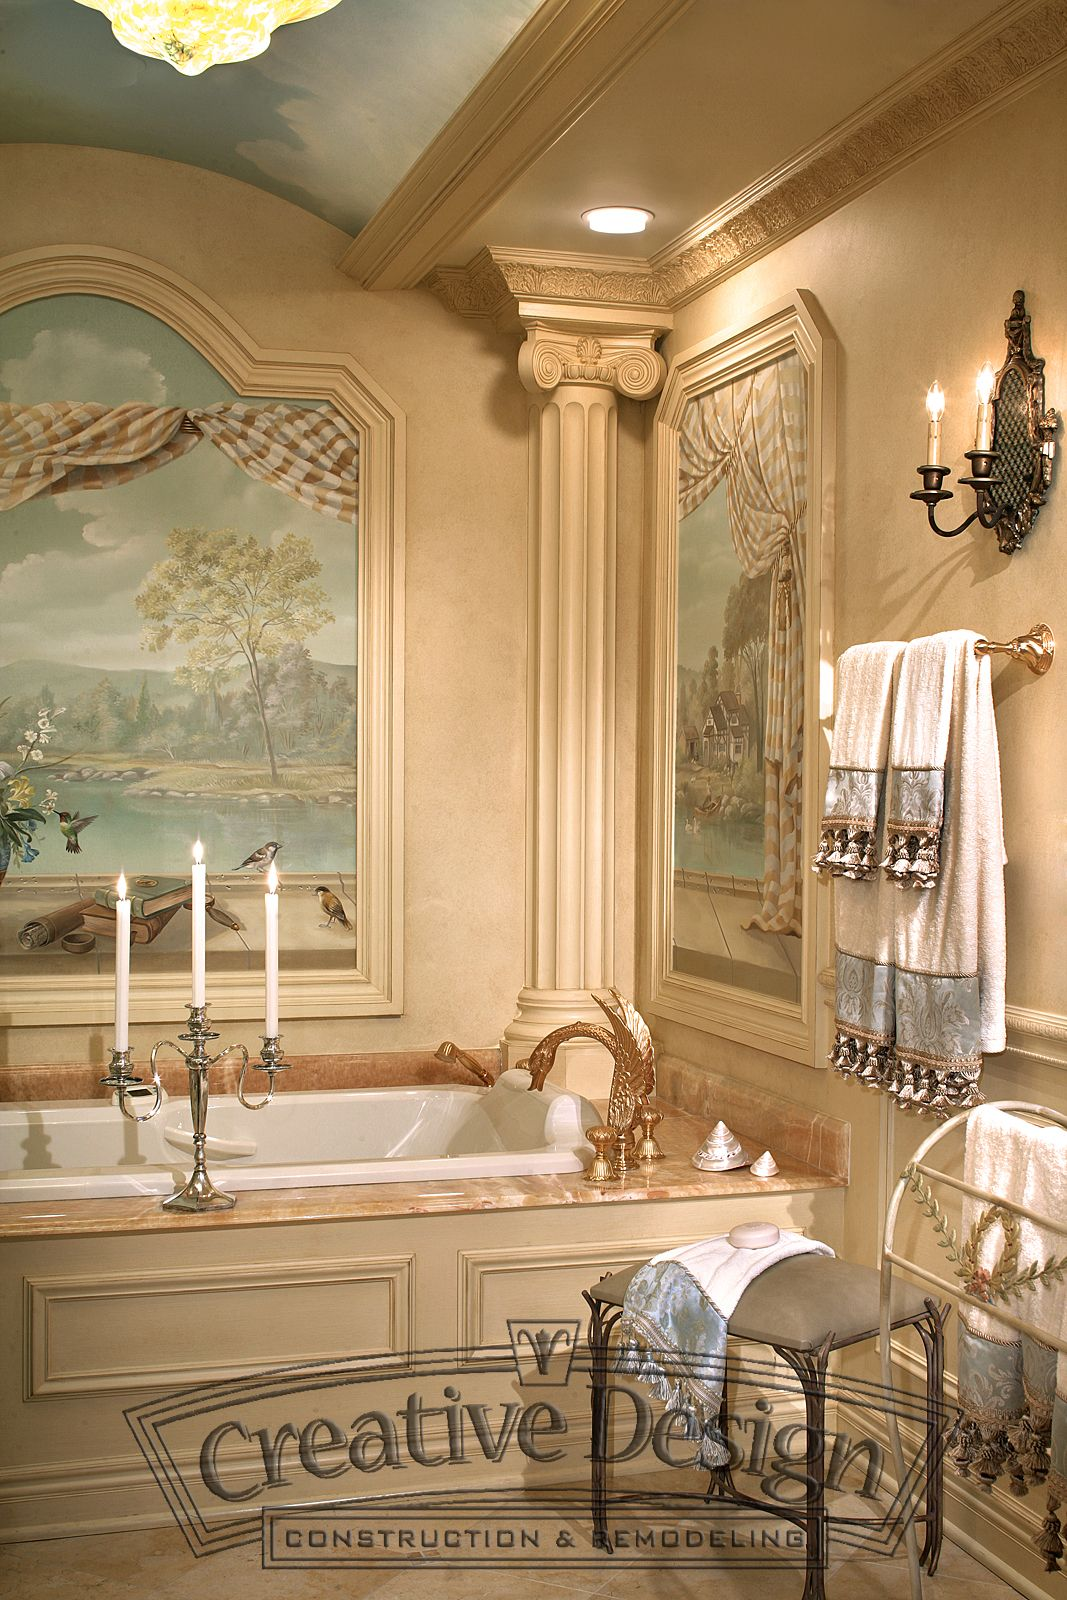 Pin by Creative Design Construction, on Bathrooms | Luxury ...